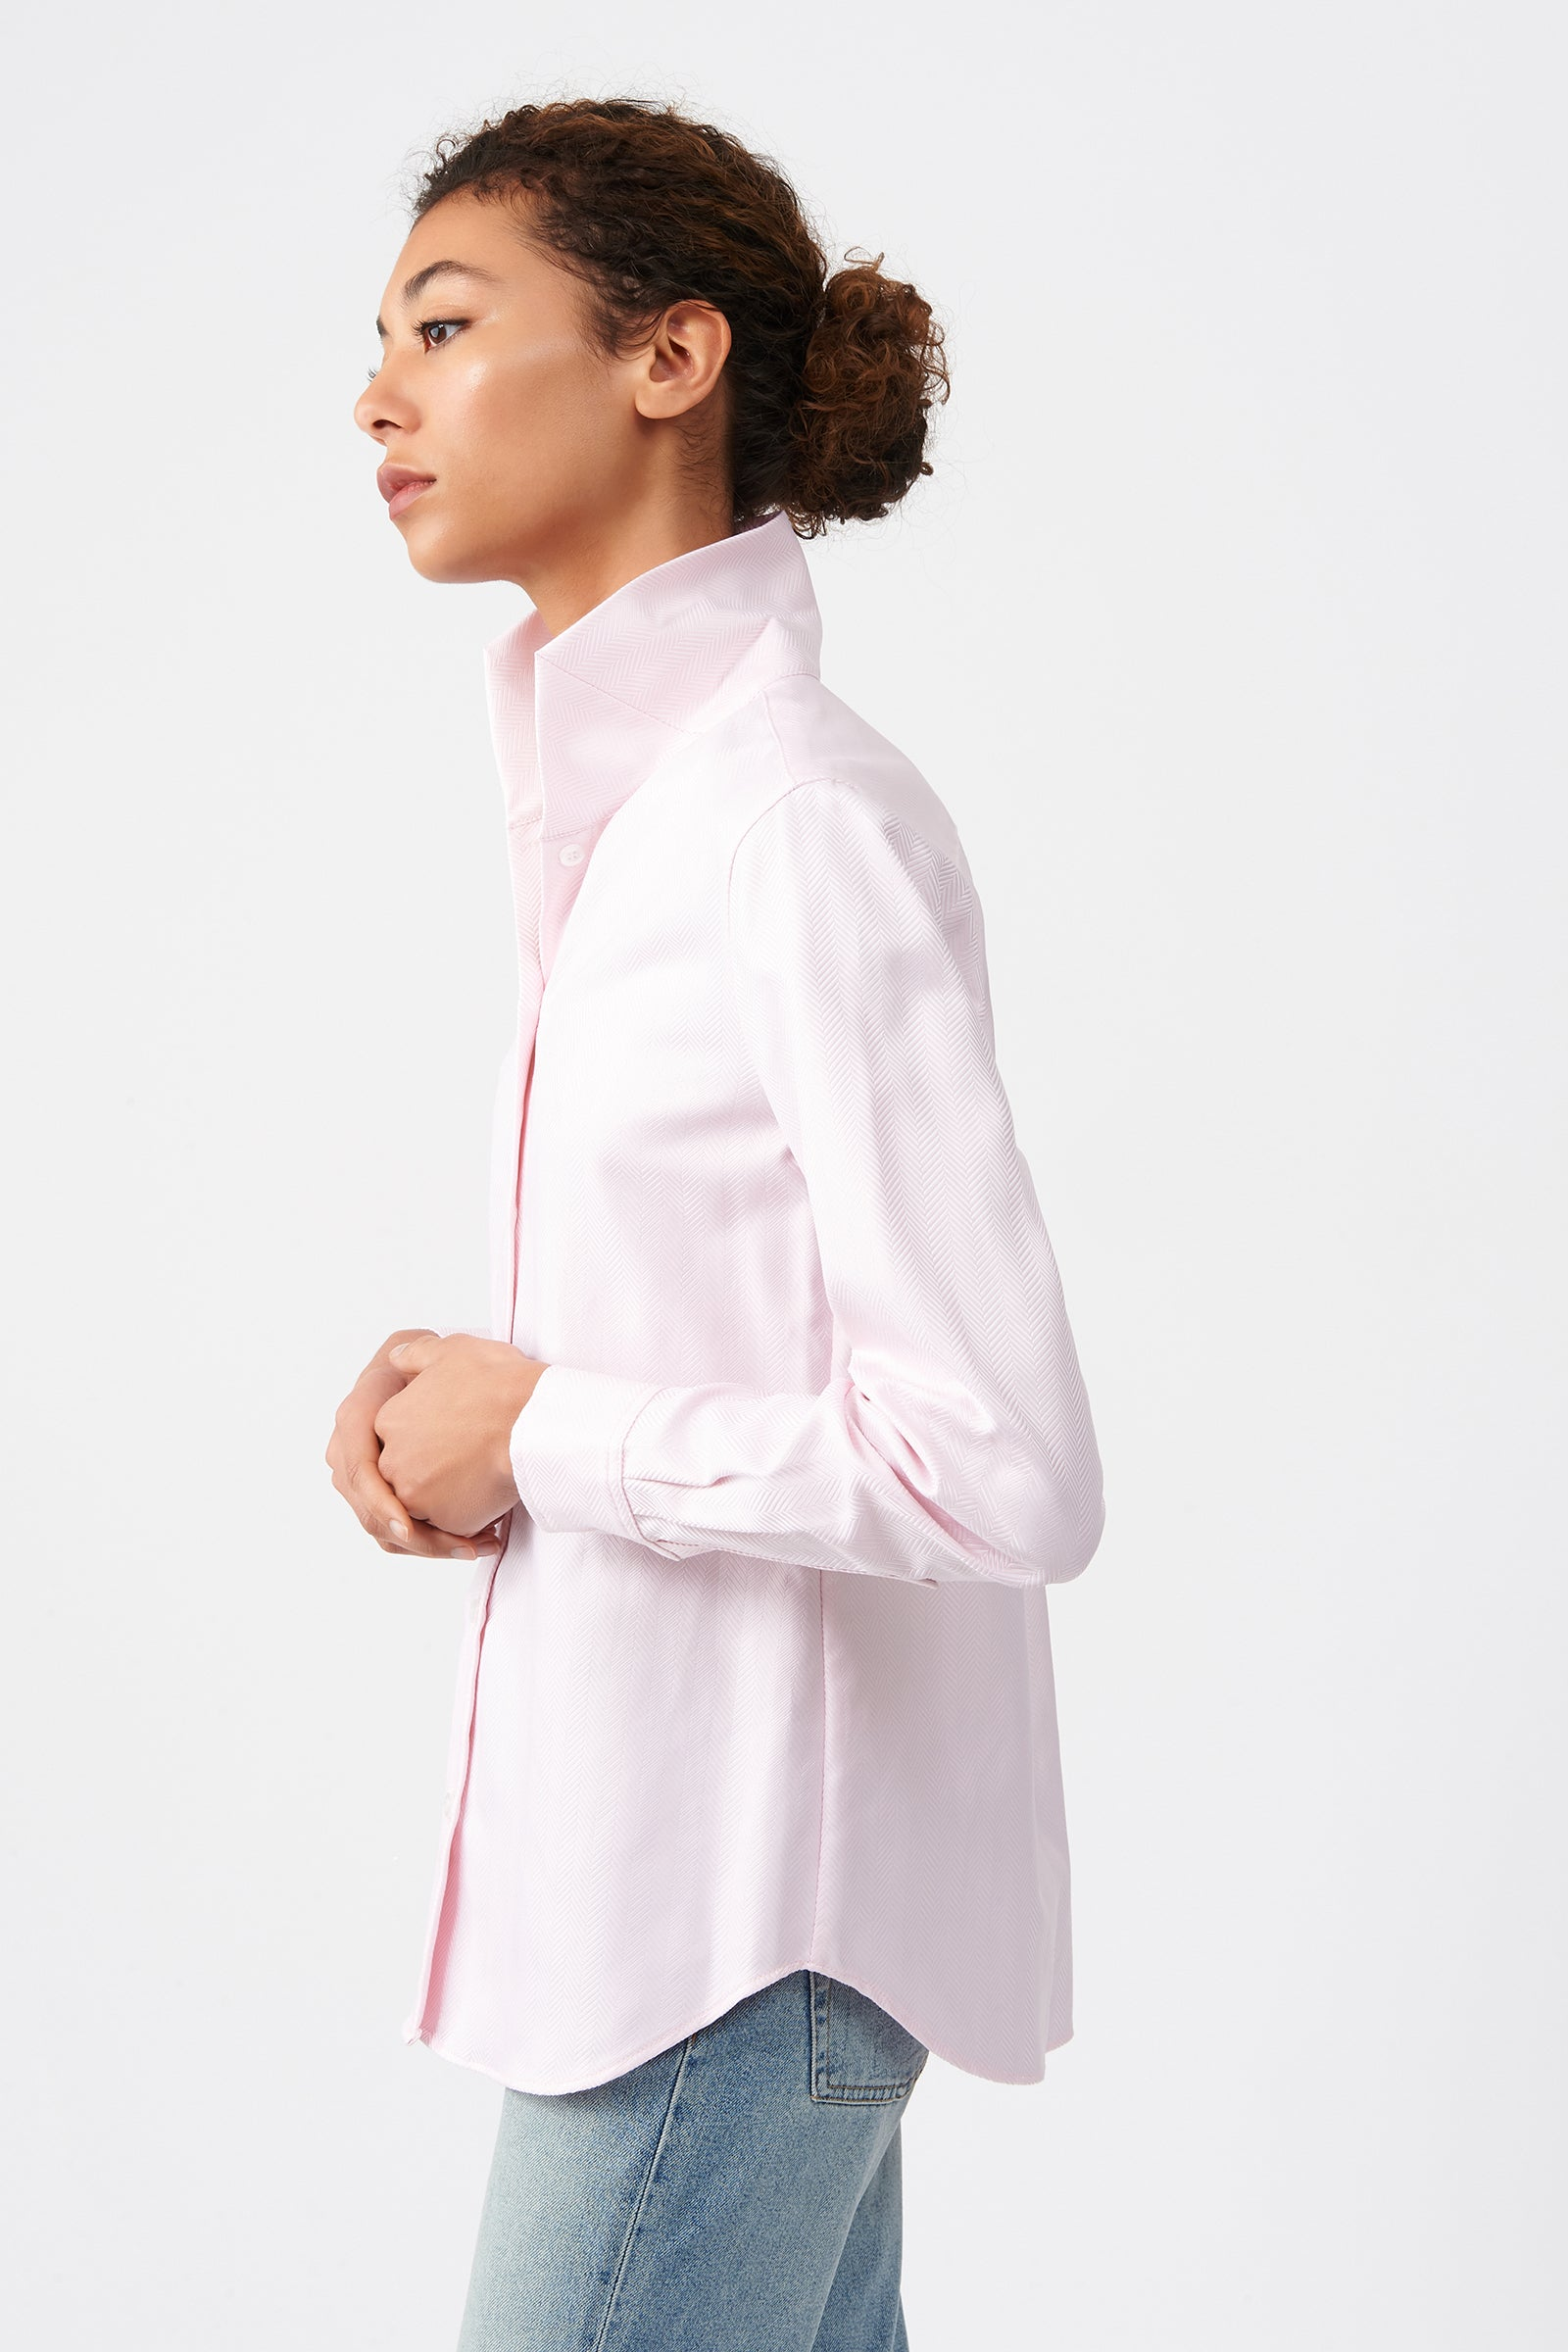 Kal Rieman Ginna Box Pleat Shirt in Pink Herringbone on Model Side Alternate View